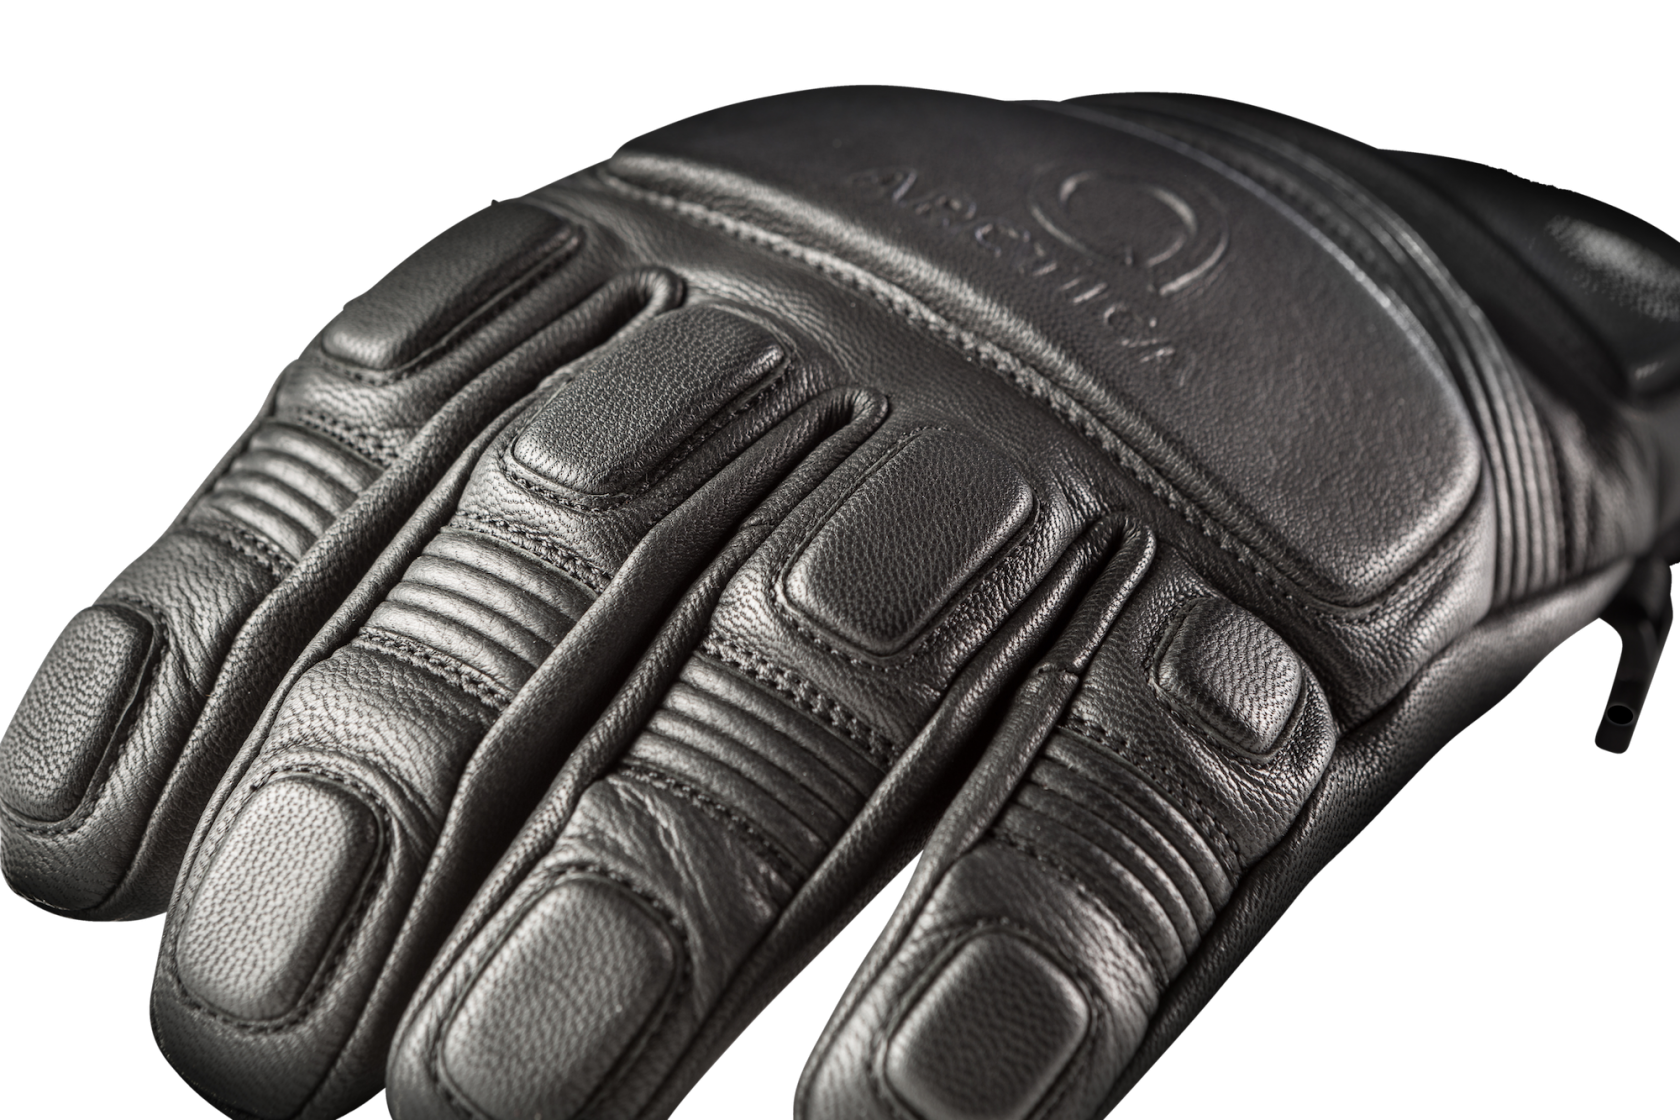 Arctica Race Gloves and Mitts - Gw290 Race glove